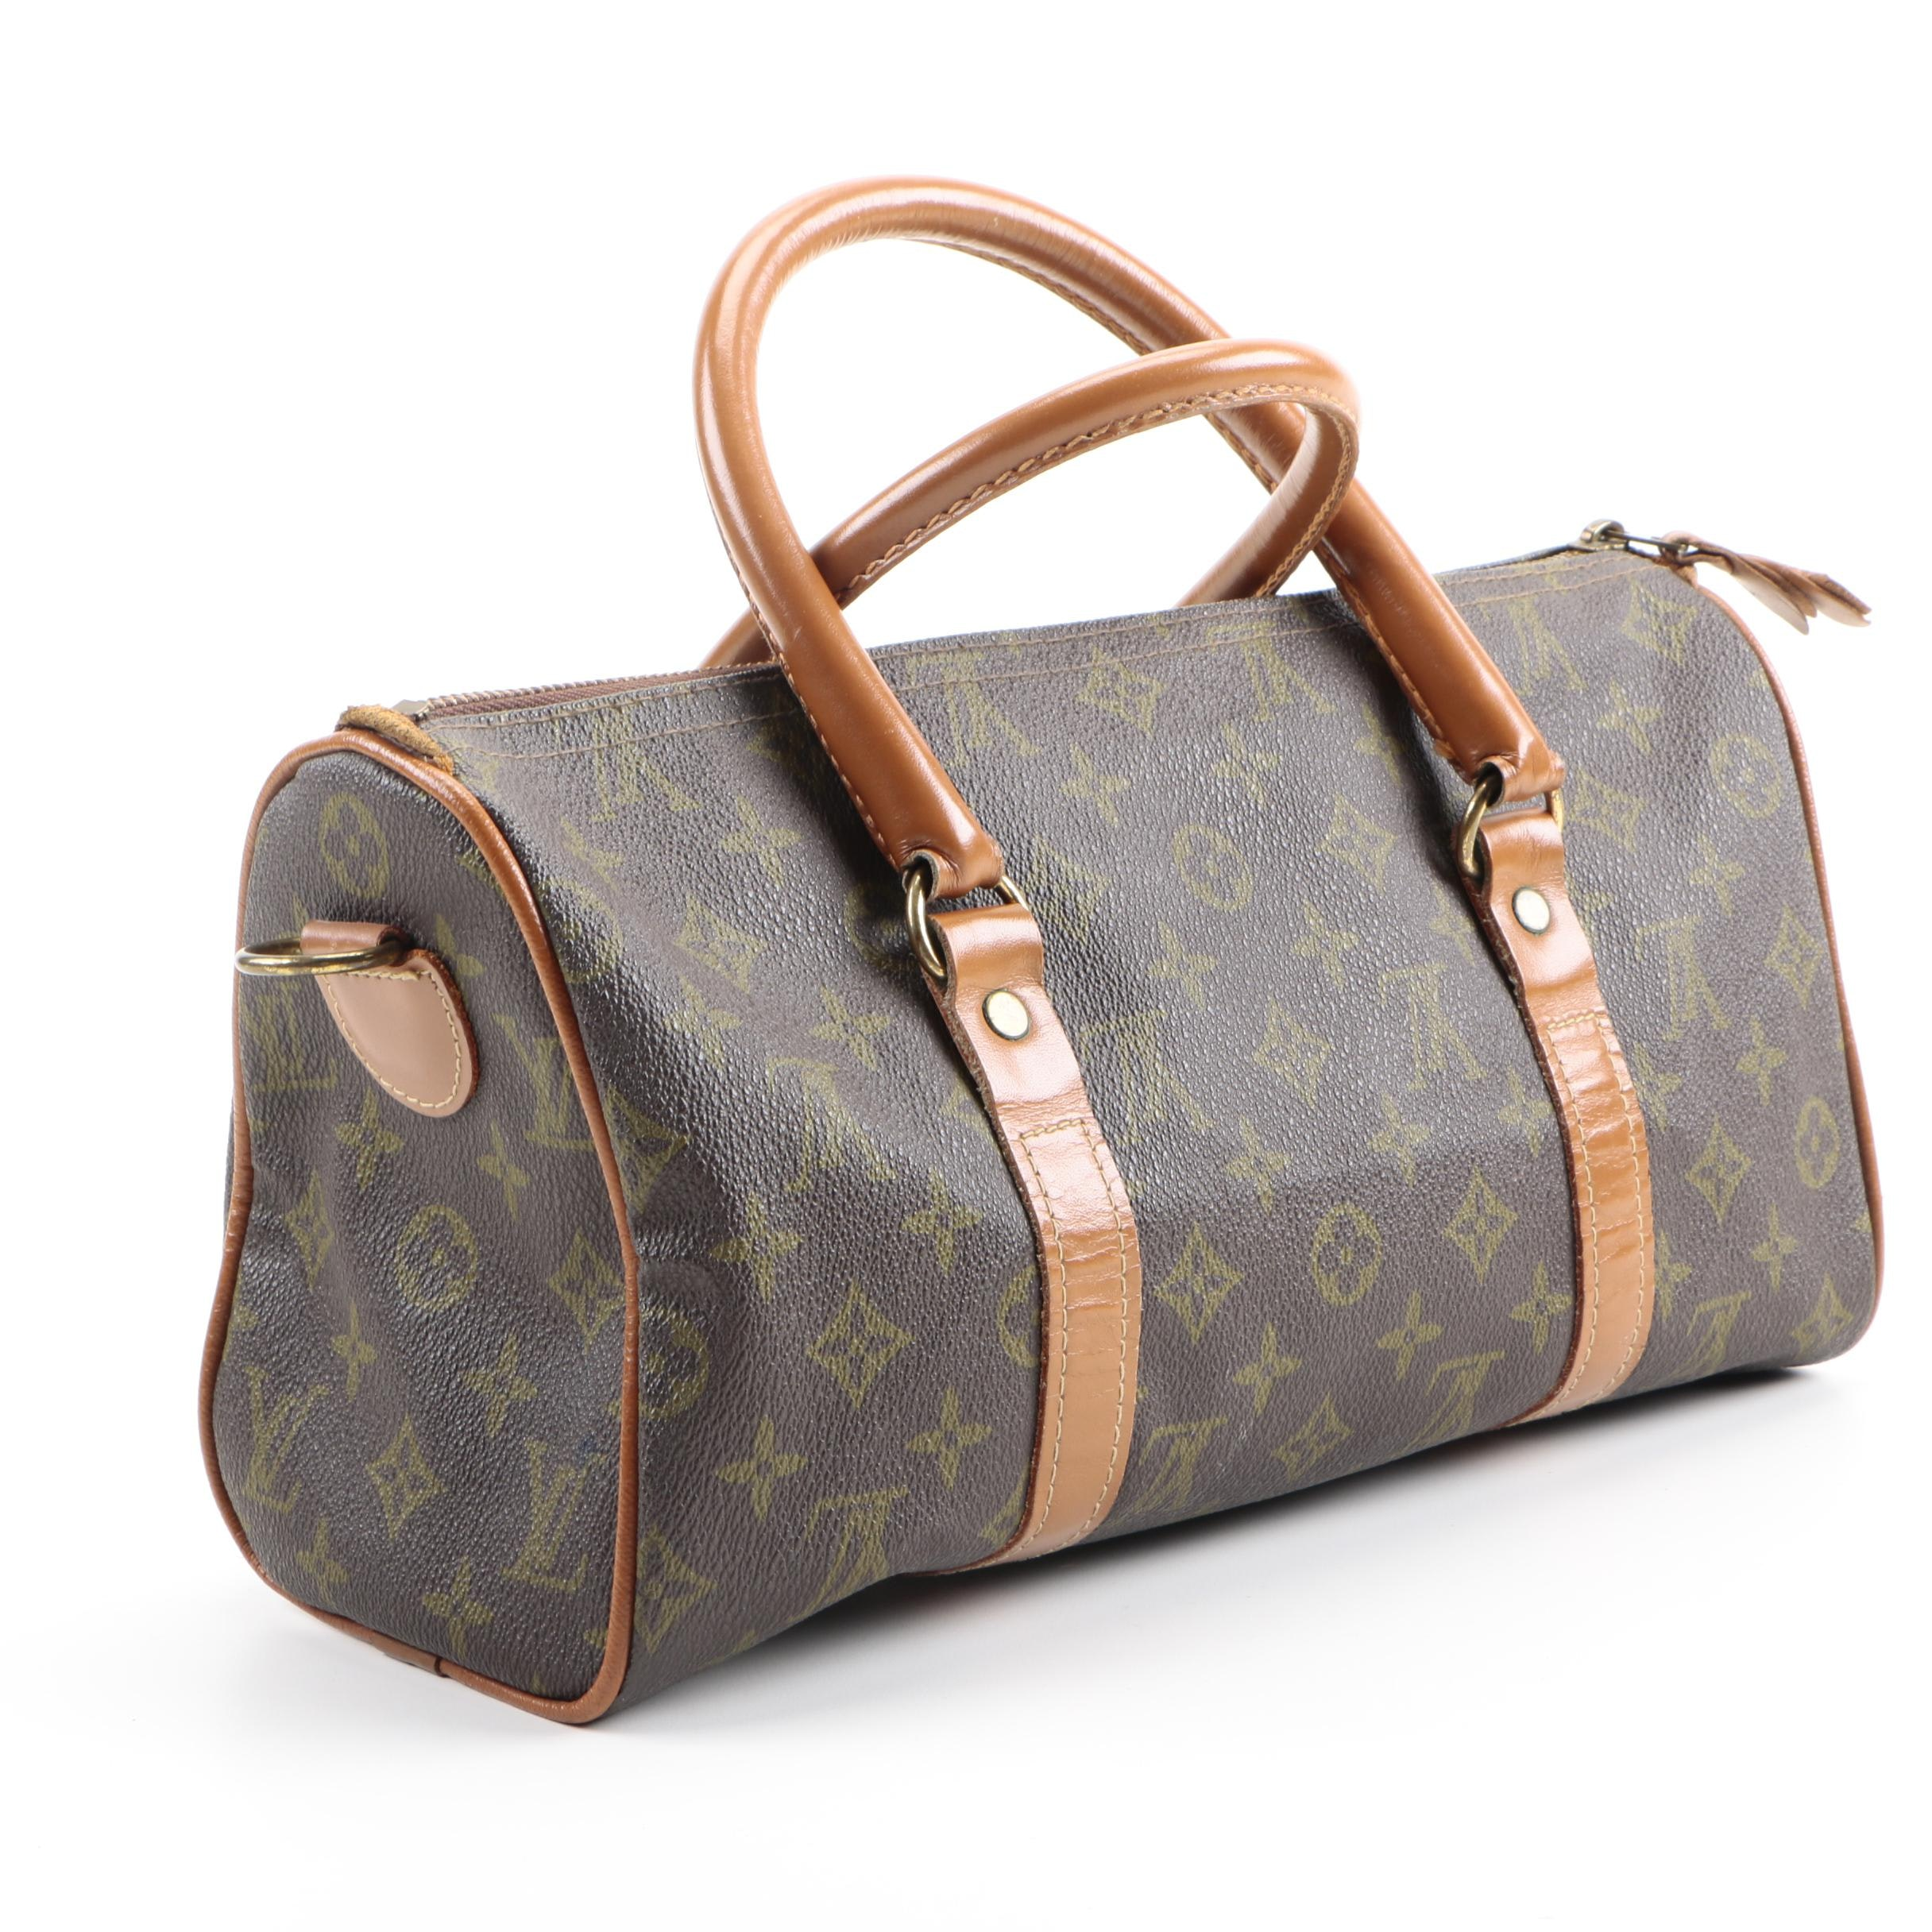 Vintage Louis Vuitton French Company Duffle